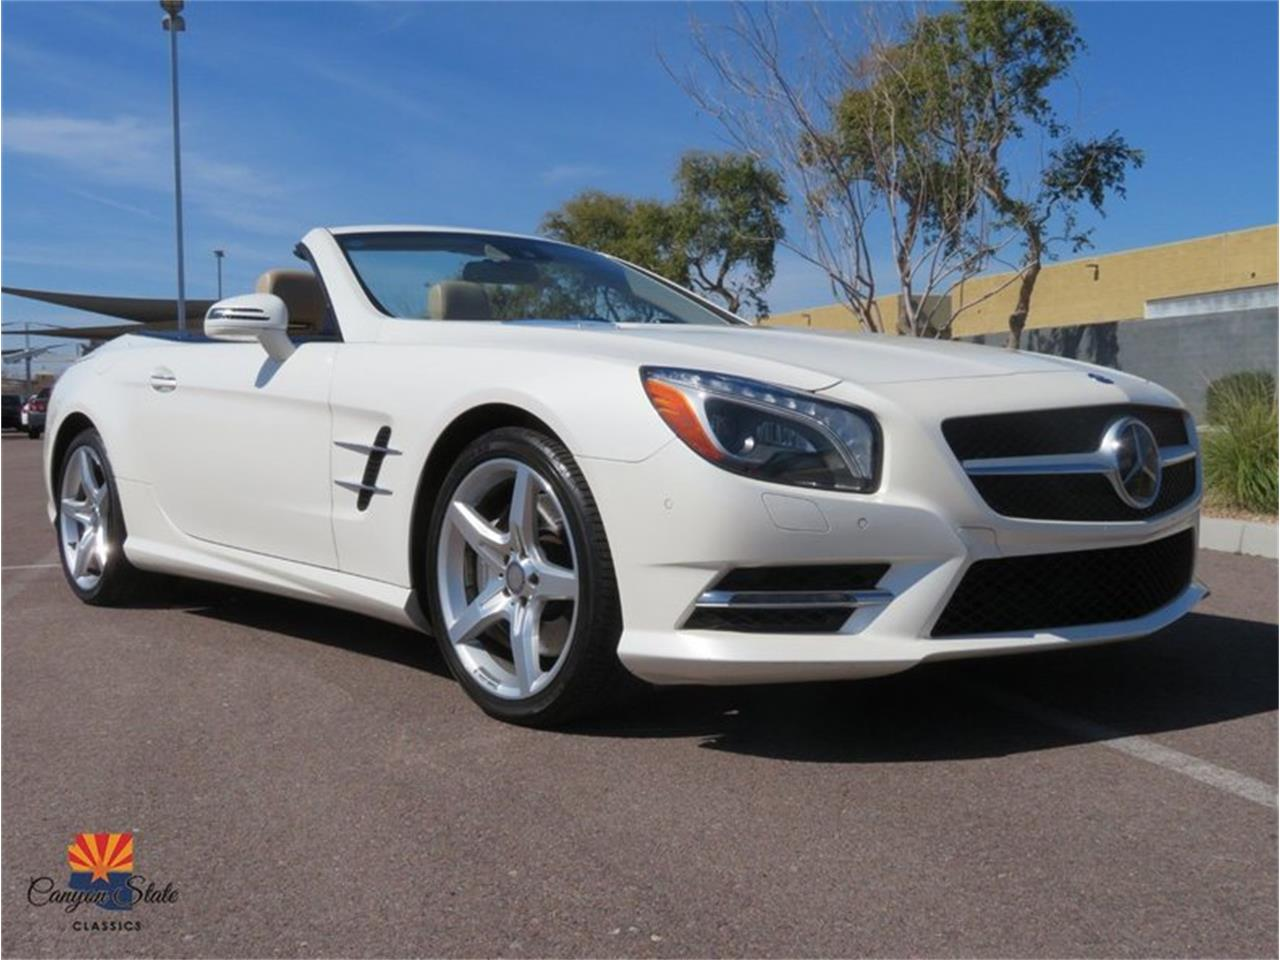 2013 Mercedes-Benz SL-Class for sale in Tempe, AZ – photo 40